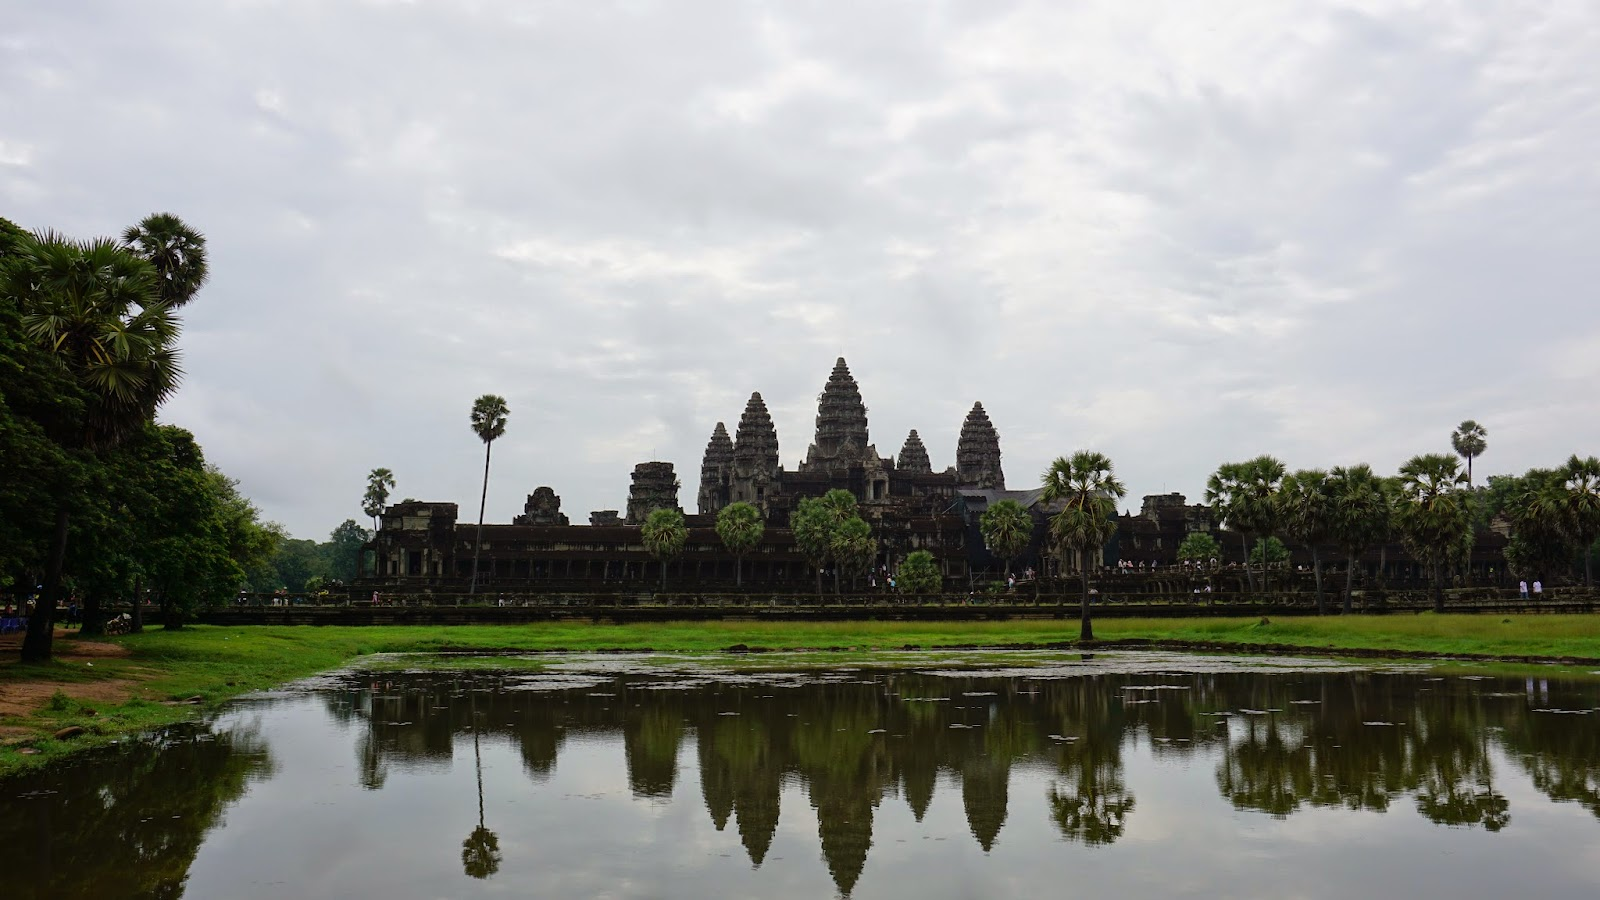 Angkor Wat, the largest religious monument in the world